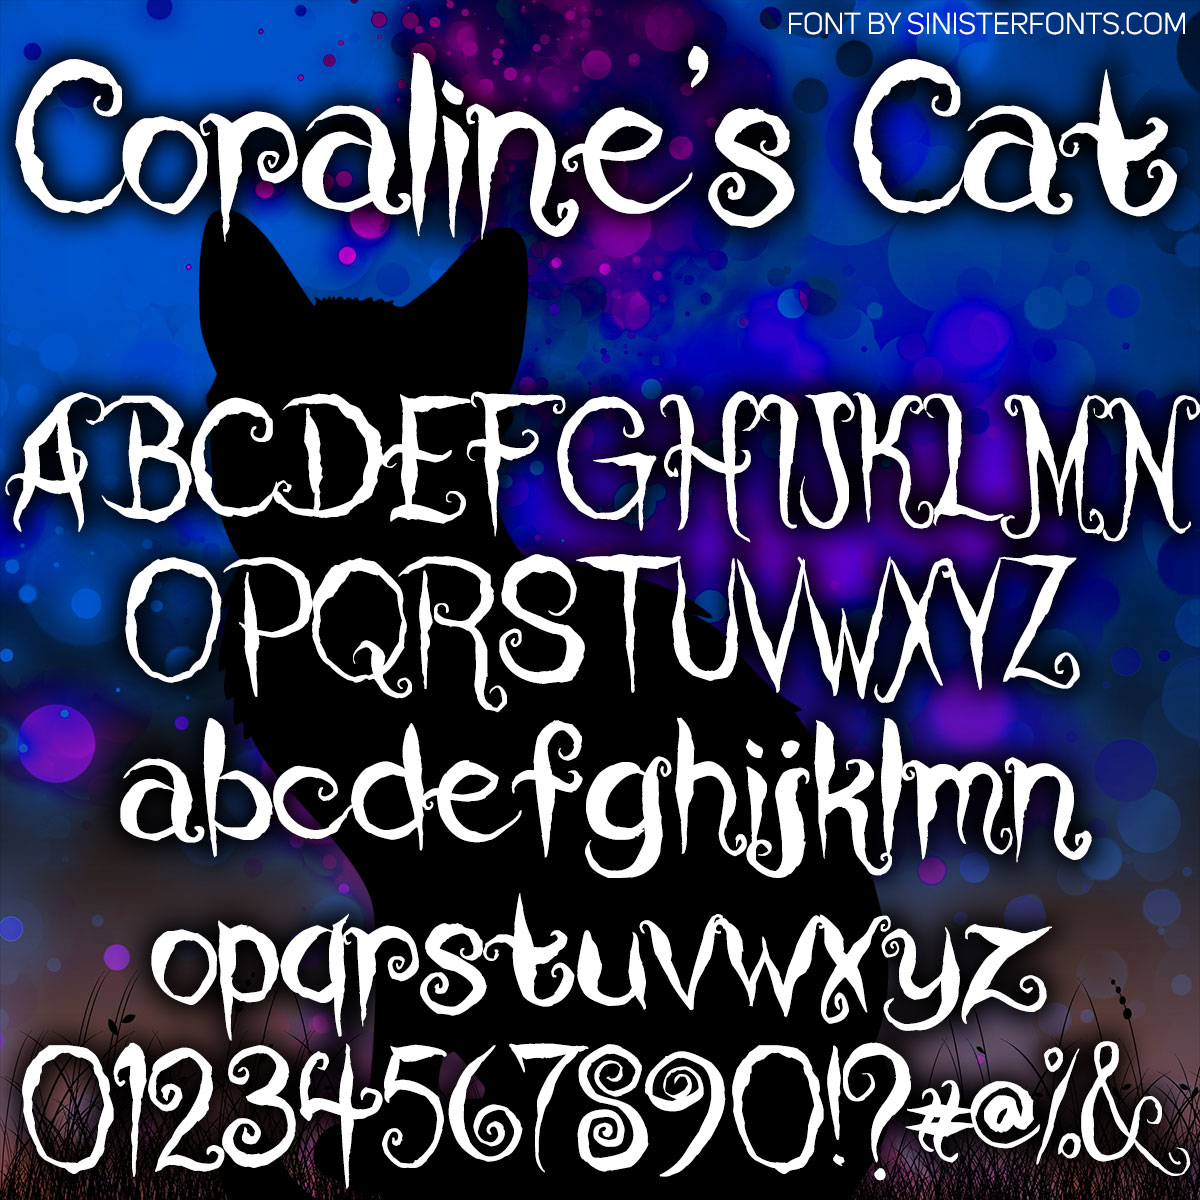 Coraline S Cat Font Free Download Freefontspro Com